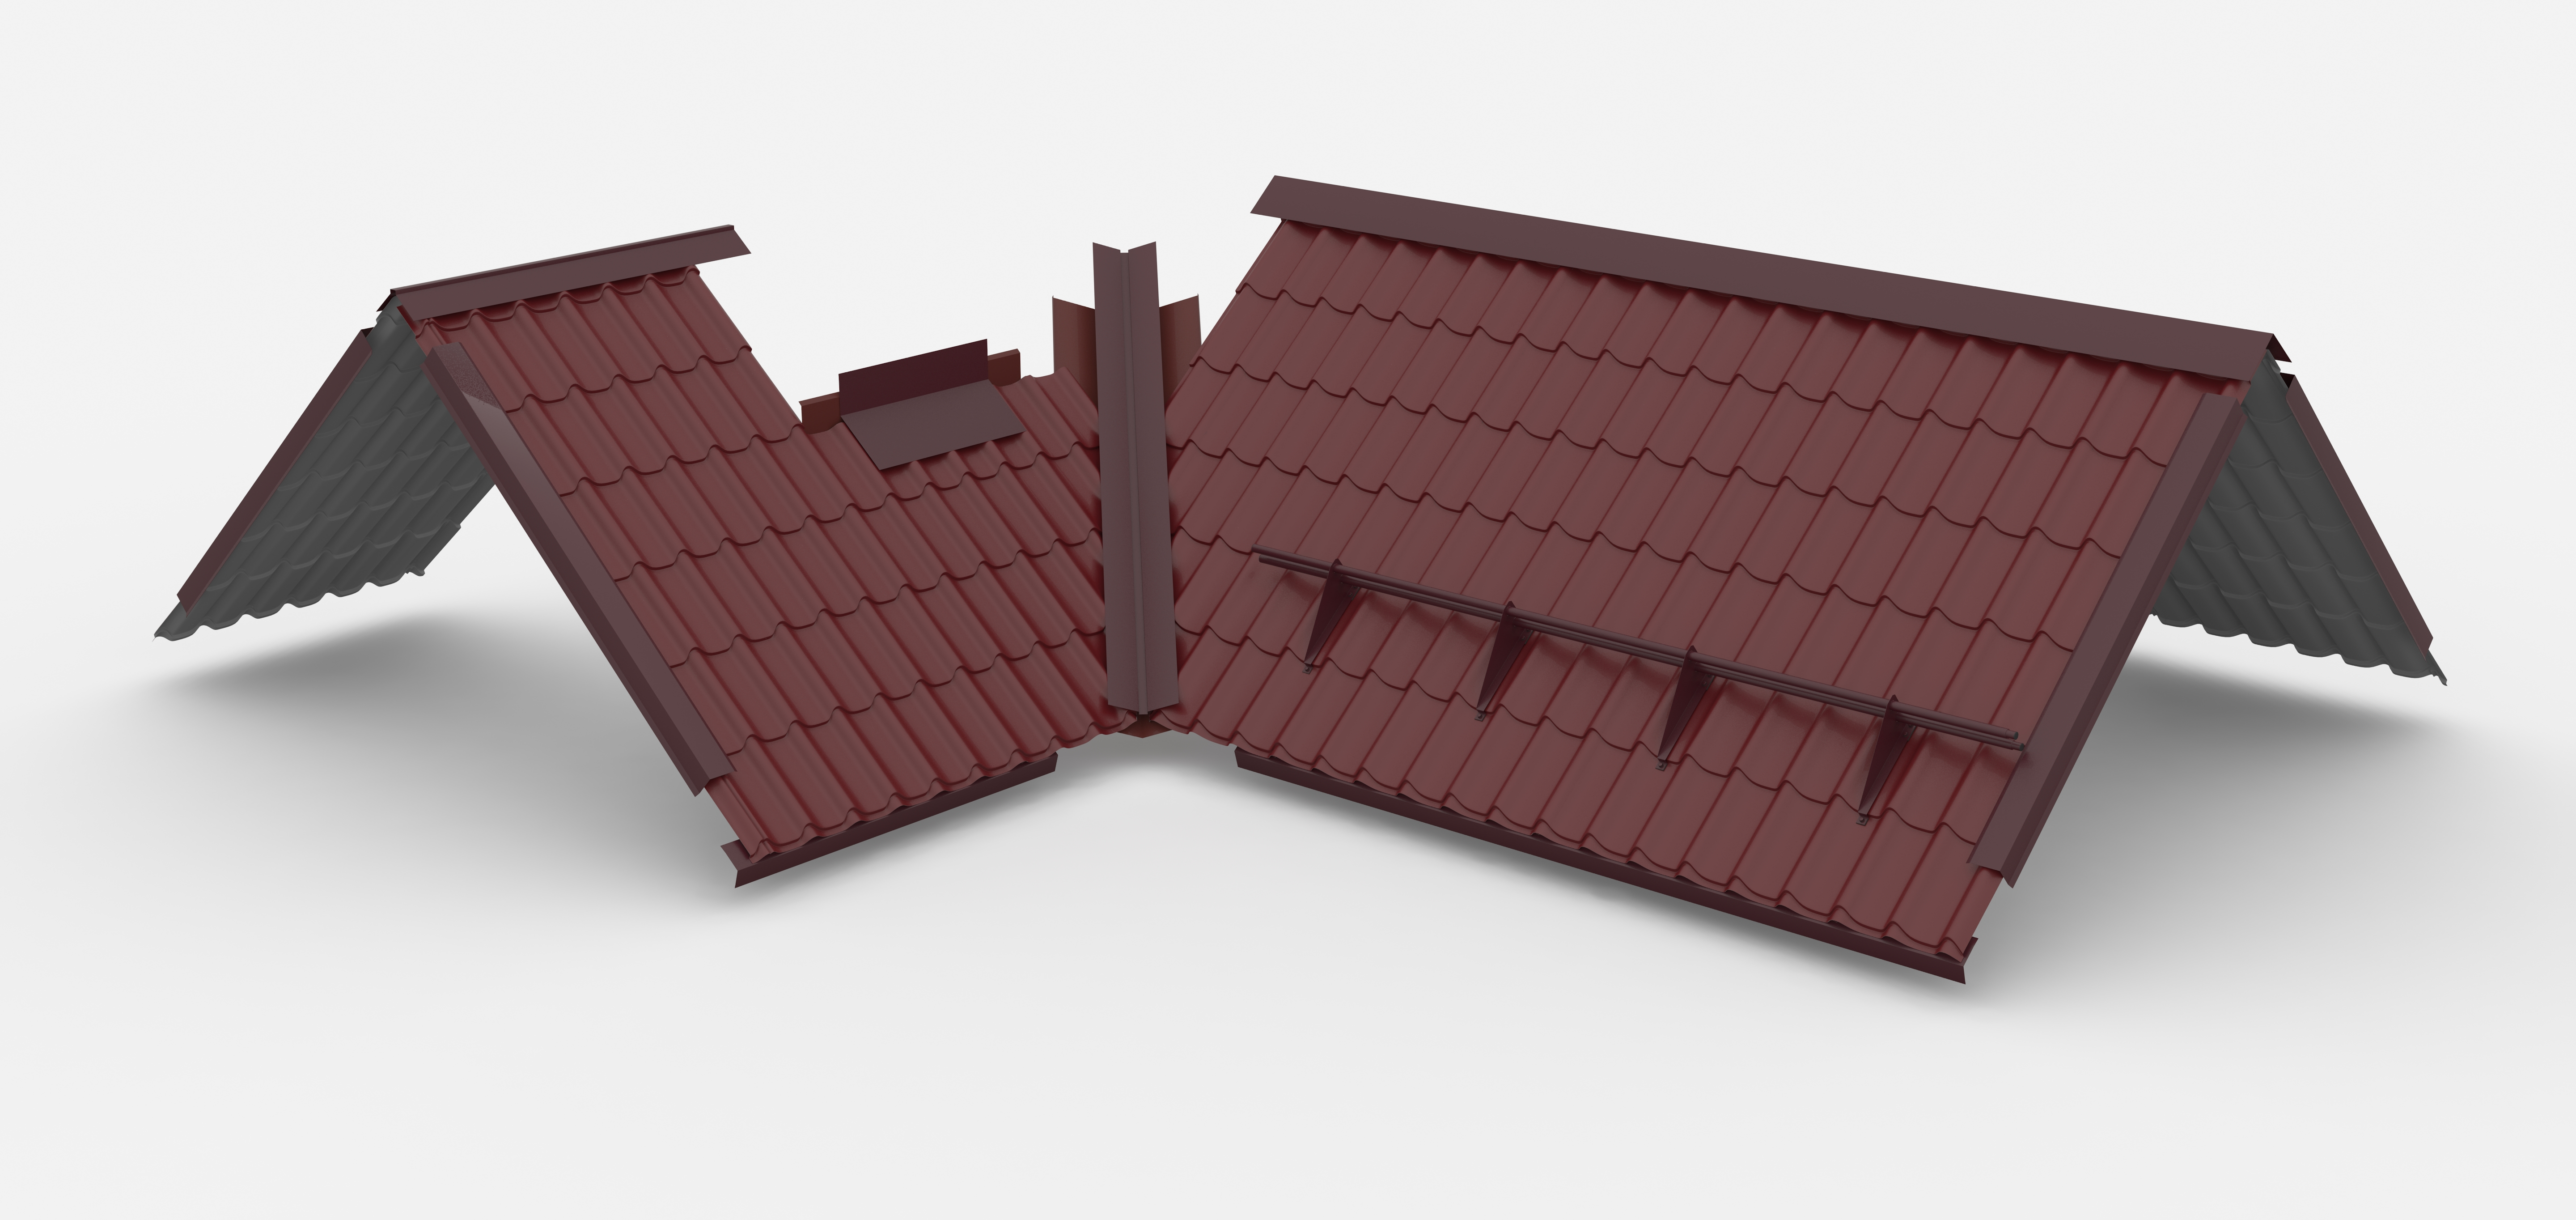 Roofing Roof 3d Model Max Dae Lxo Lxl Cgtrader Com